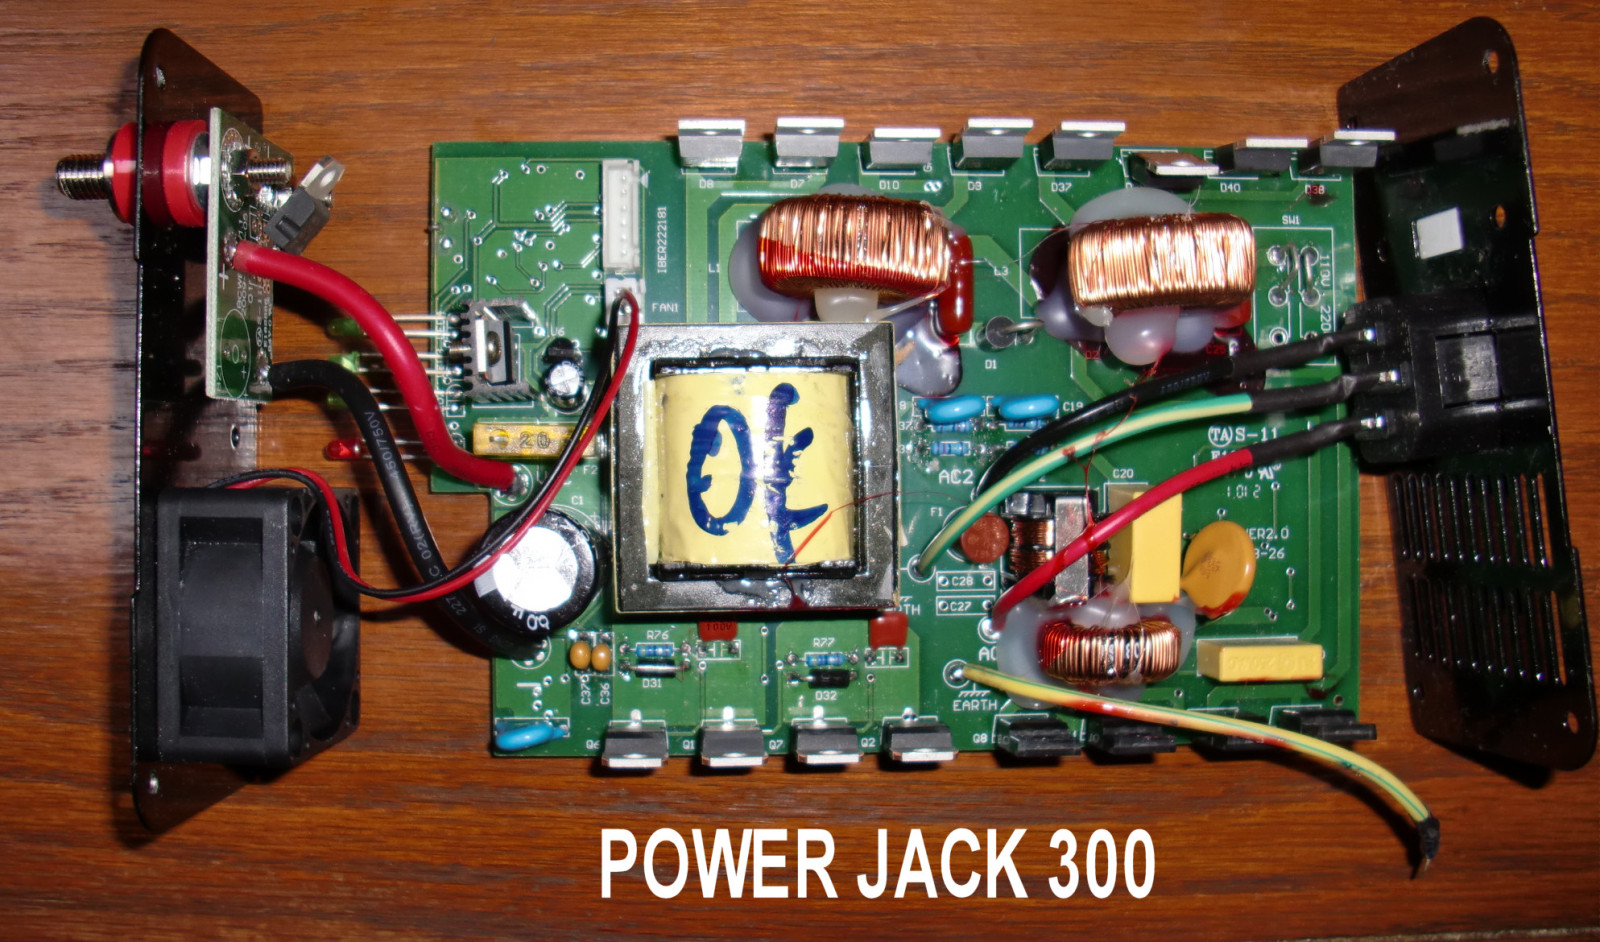 pj-300-top-board-closeup1.jpg